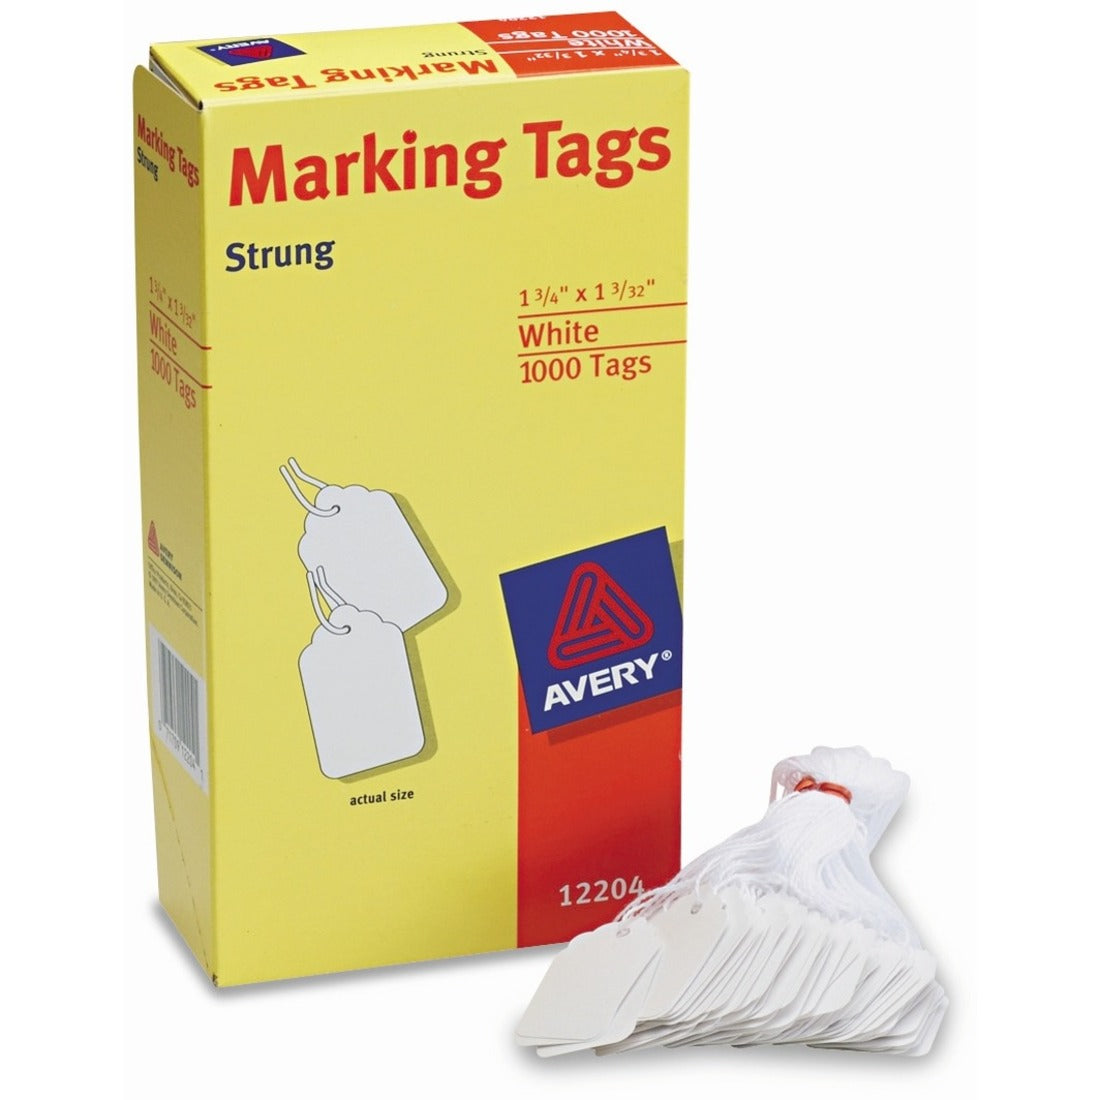 "Avery® Marking Tags, Strung, 1-3/4"" x 1-3/32"" , 1,000 Tags (12204)/ OR 50 TAG BUNDLES"